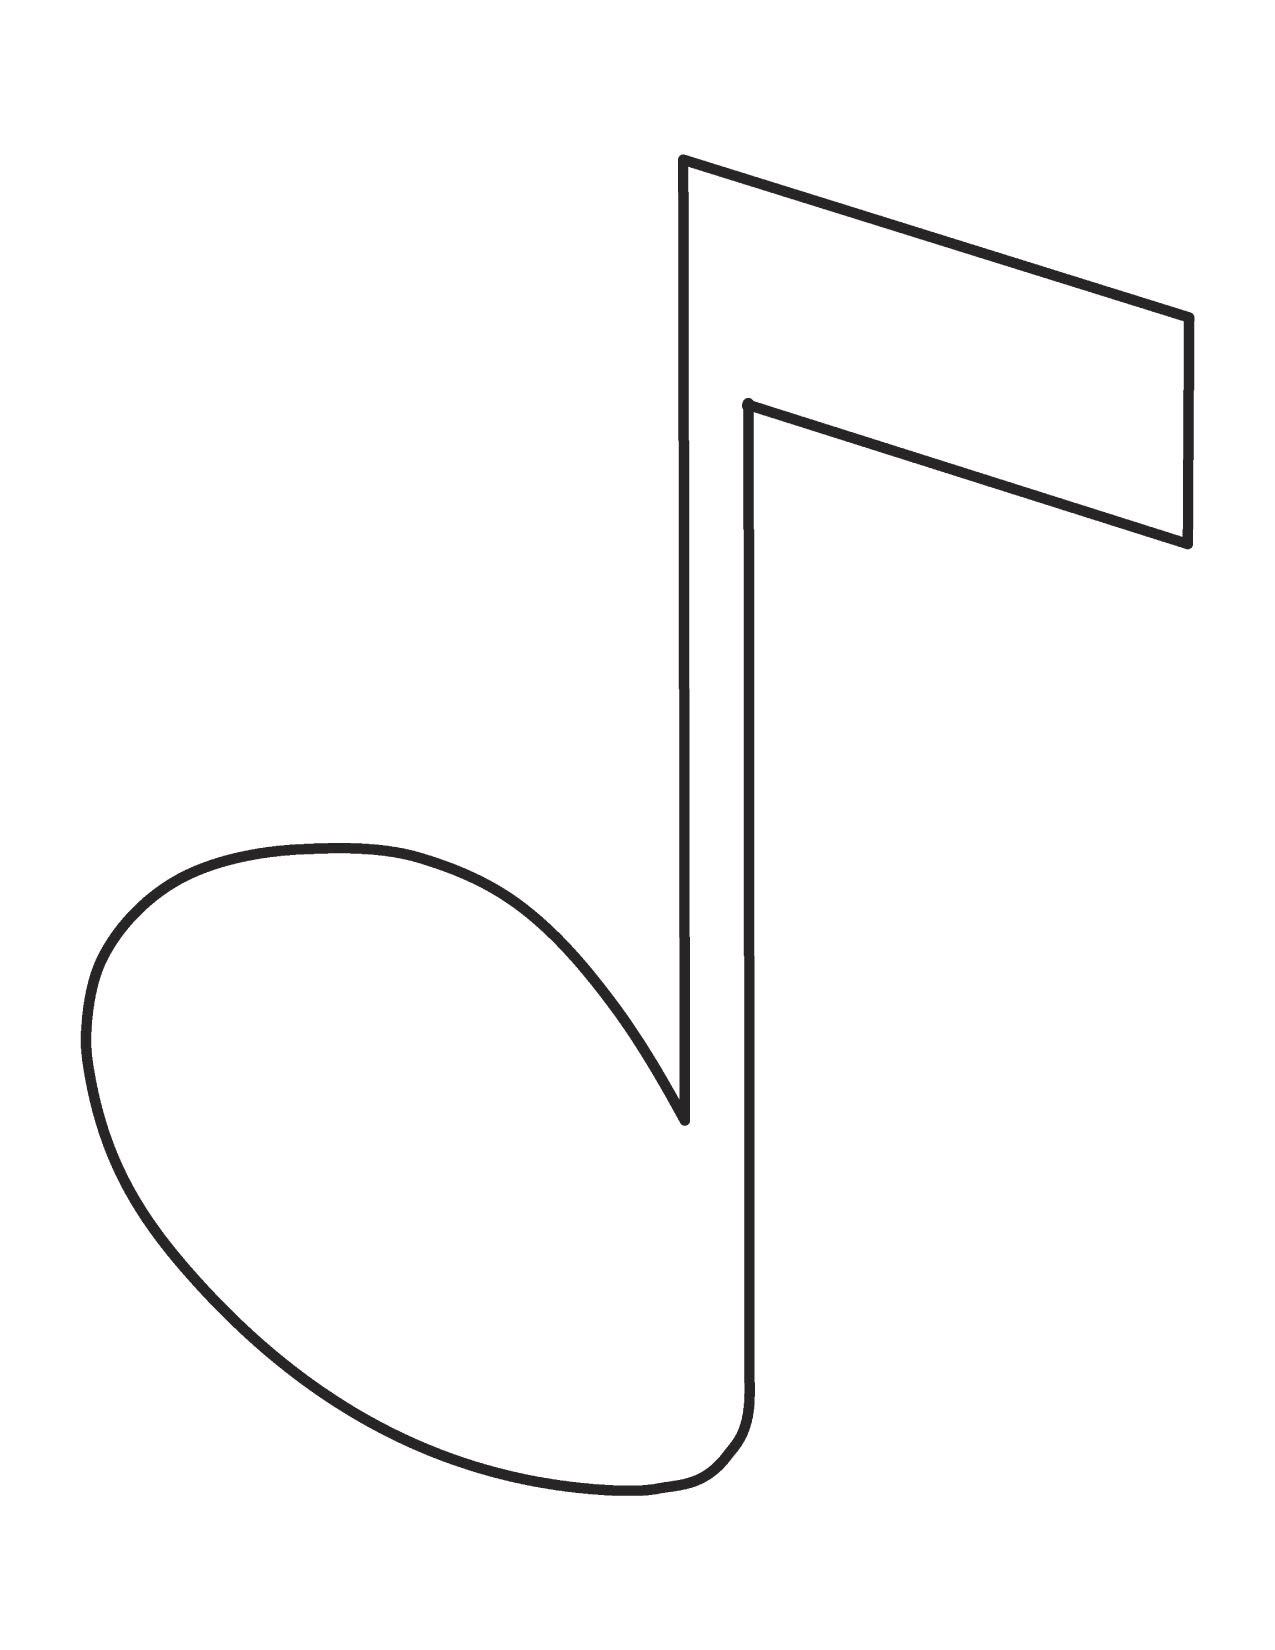 Gargantuan image intended for printable music note